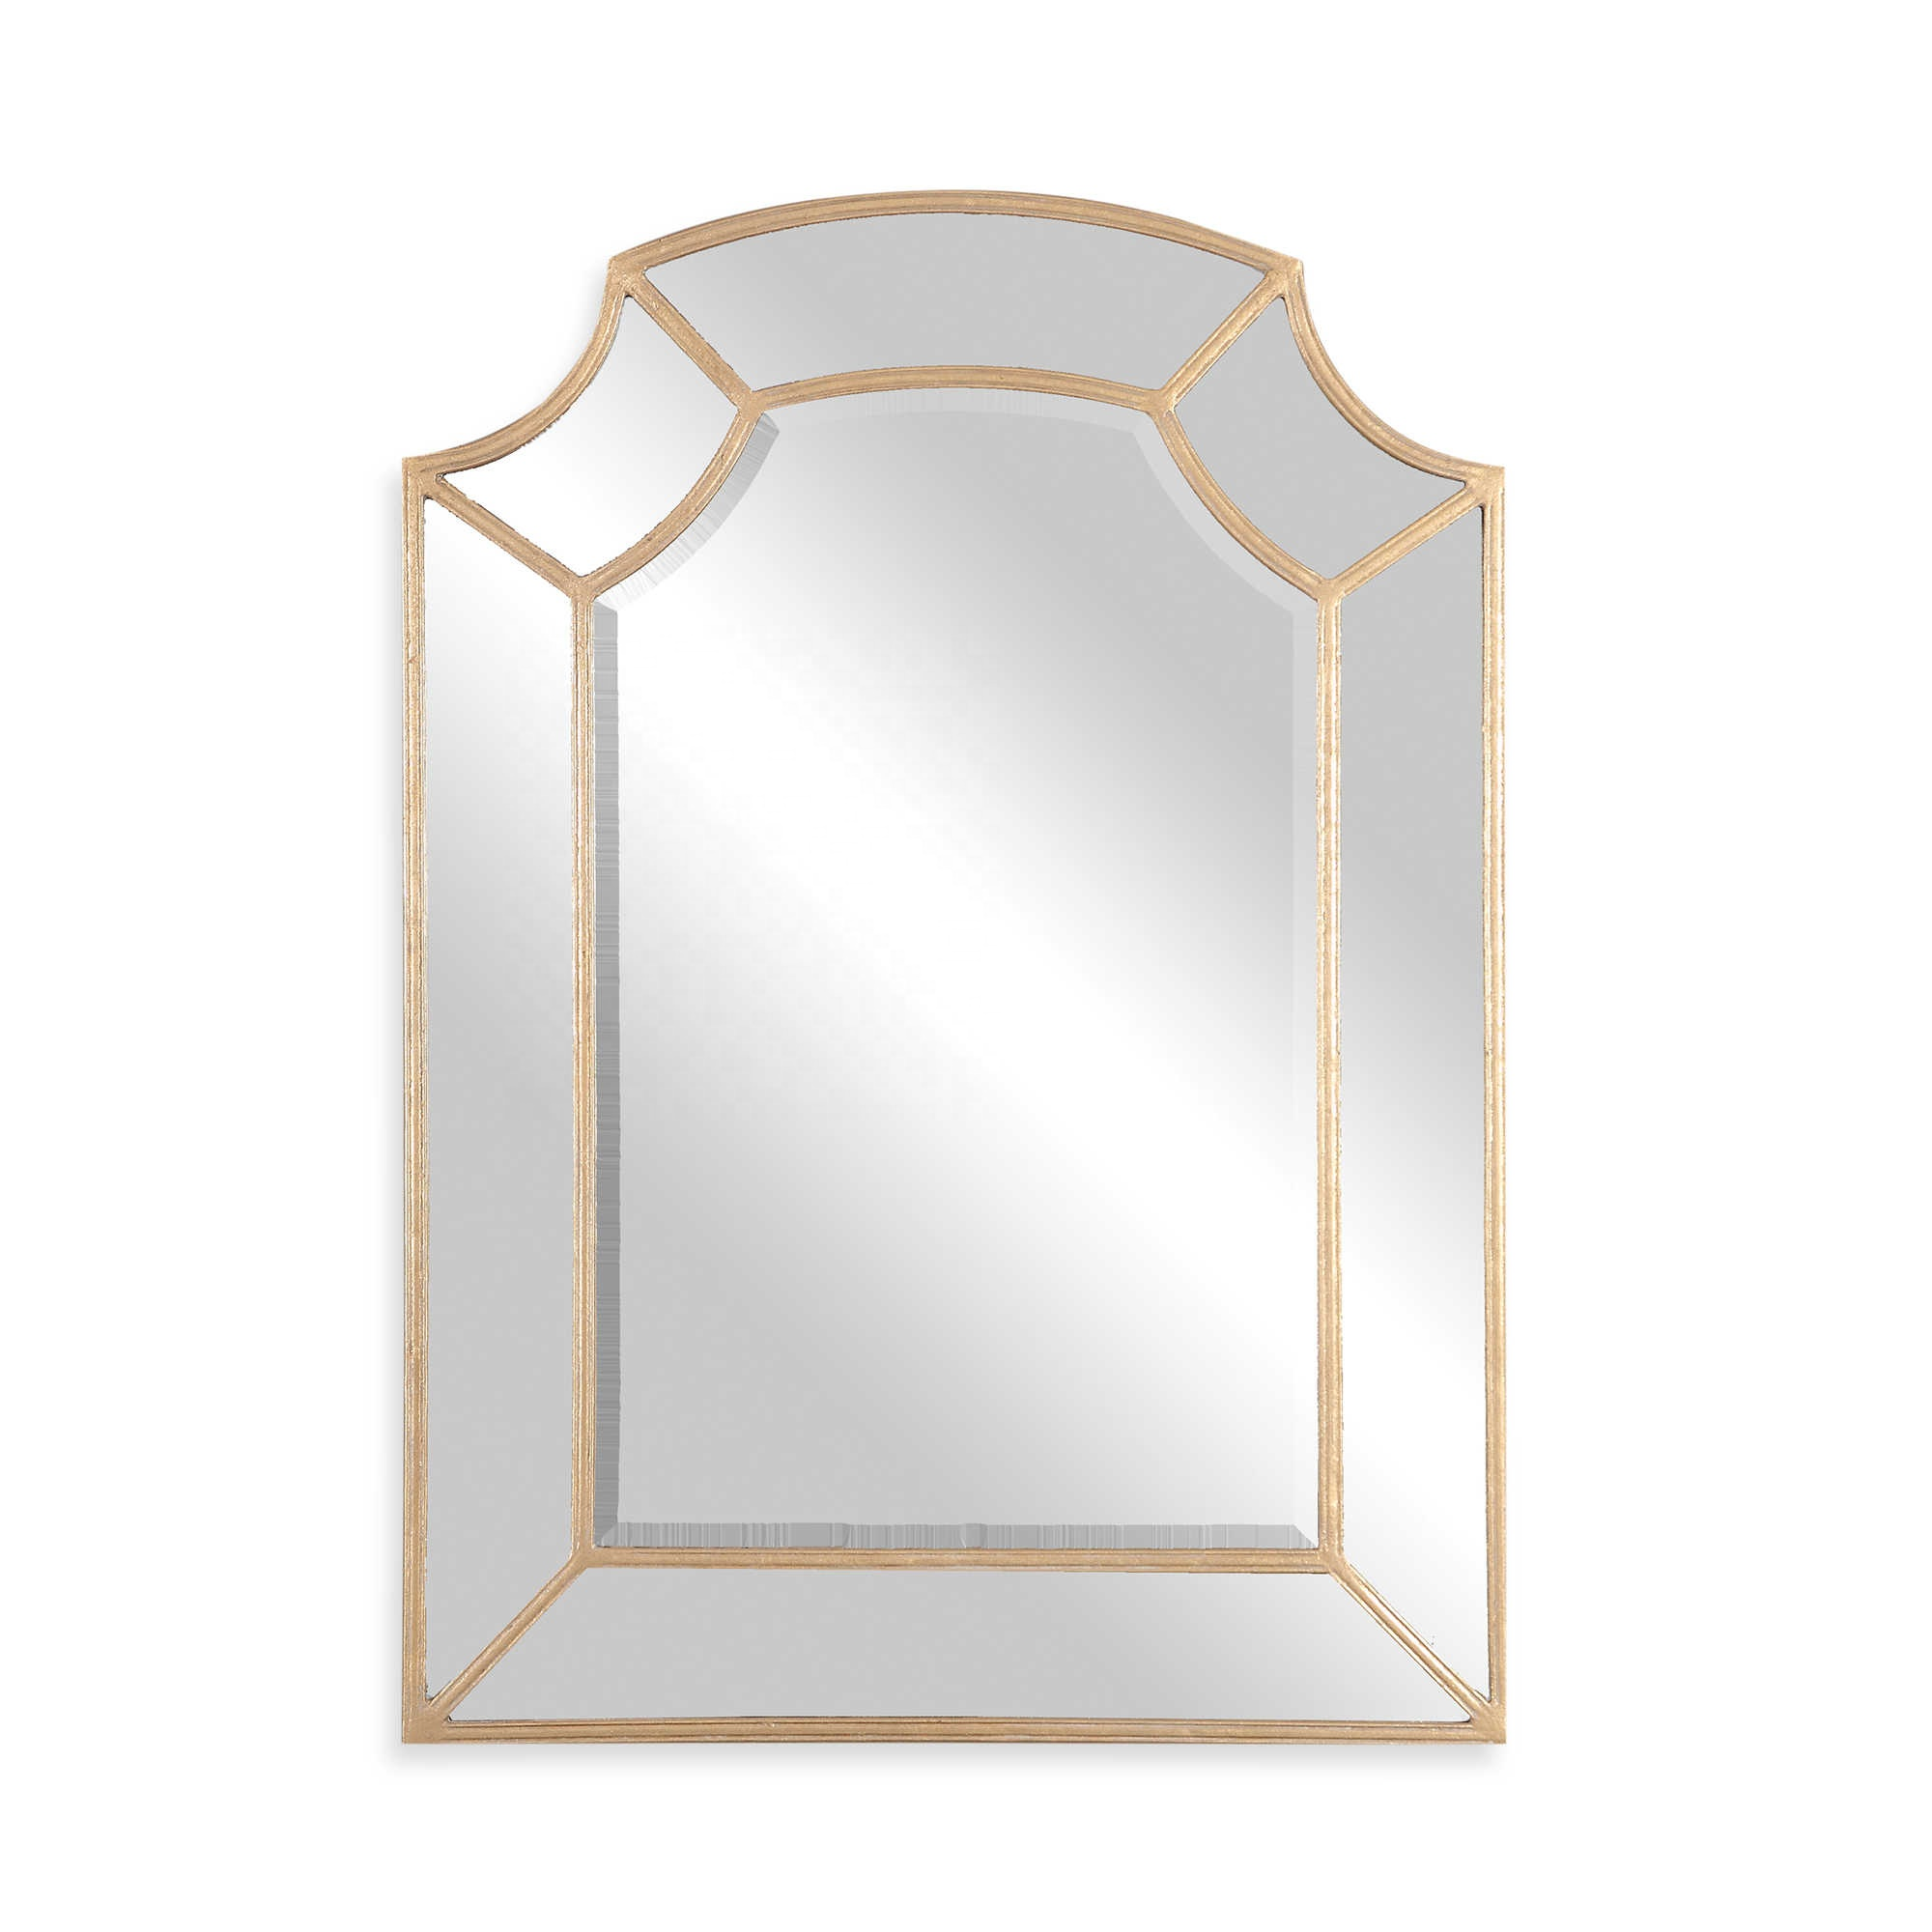 Venetian Mirror For Hotels Buy Venetian Mirror Venetian Mirror Wall Mirror Product On Alibaba Com